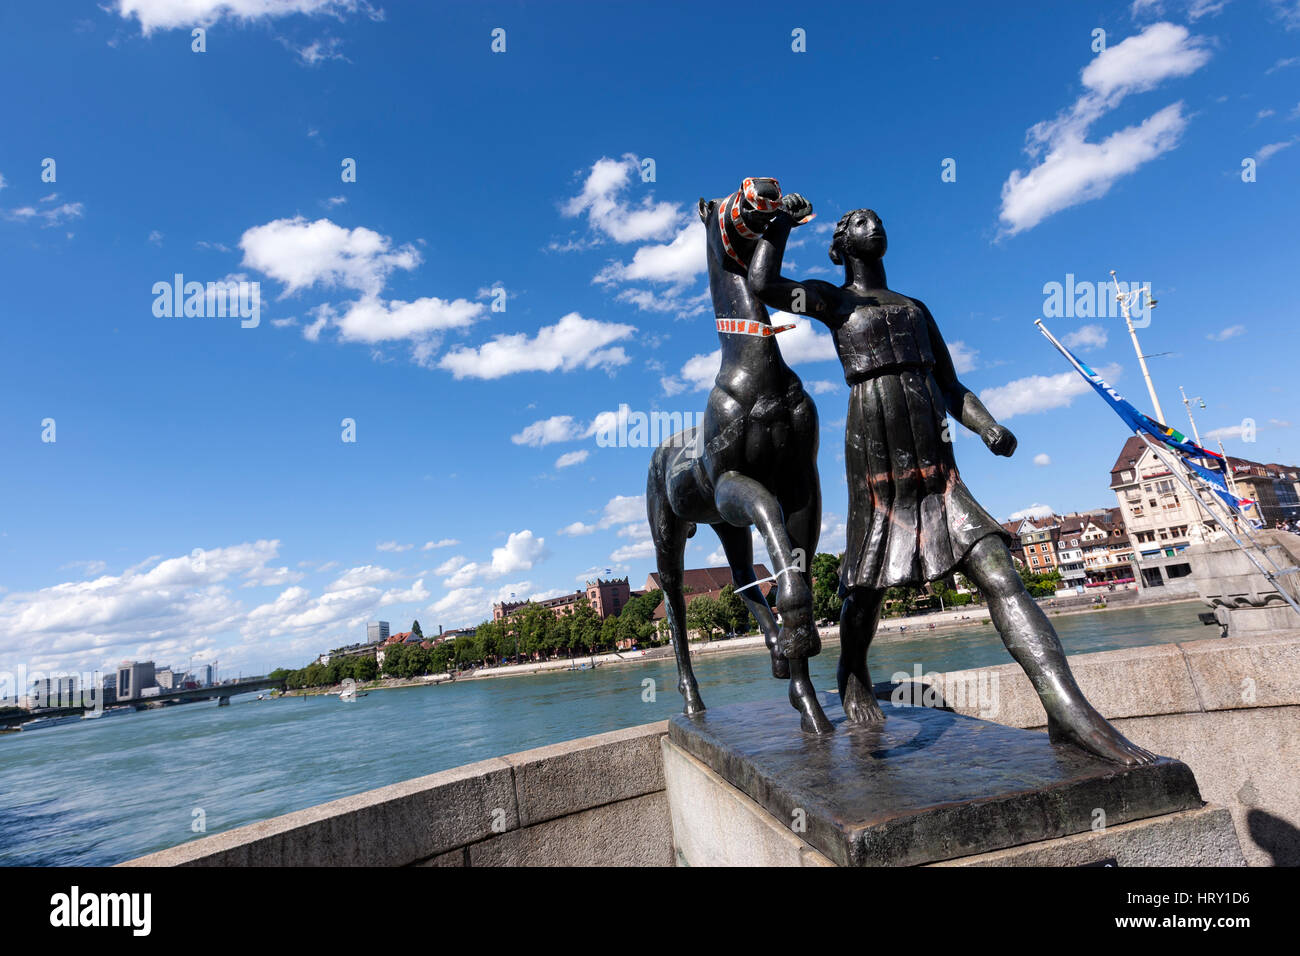 Sculpture of Amazon with horse by artist Carl Nathan Burckhardt, Mittlere Bruecke over the Rhine River, Basel, Switzerland - Stock Image